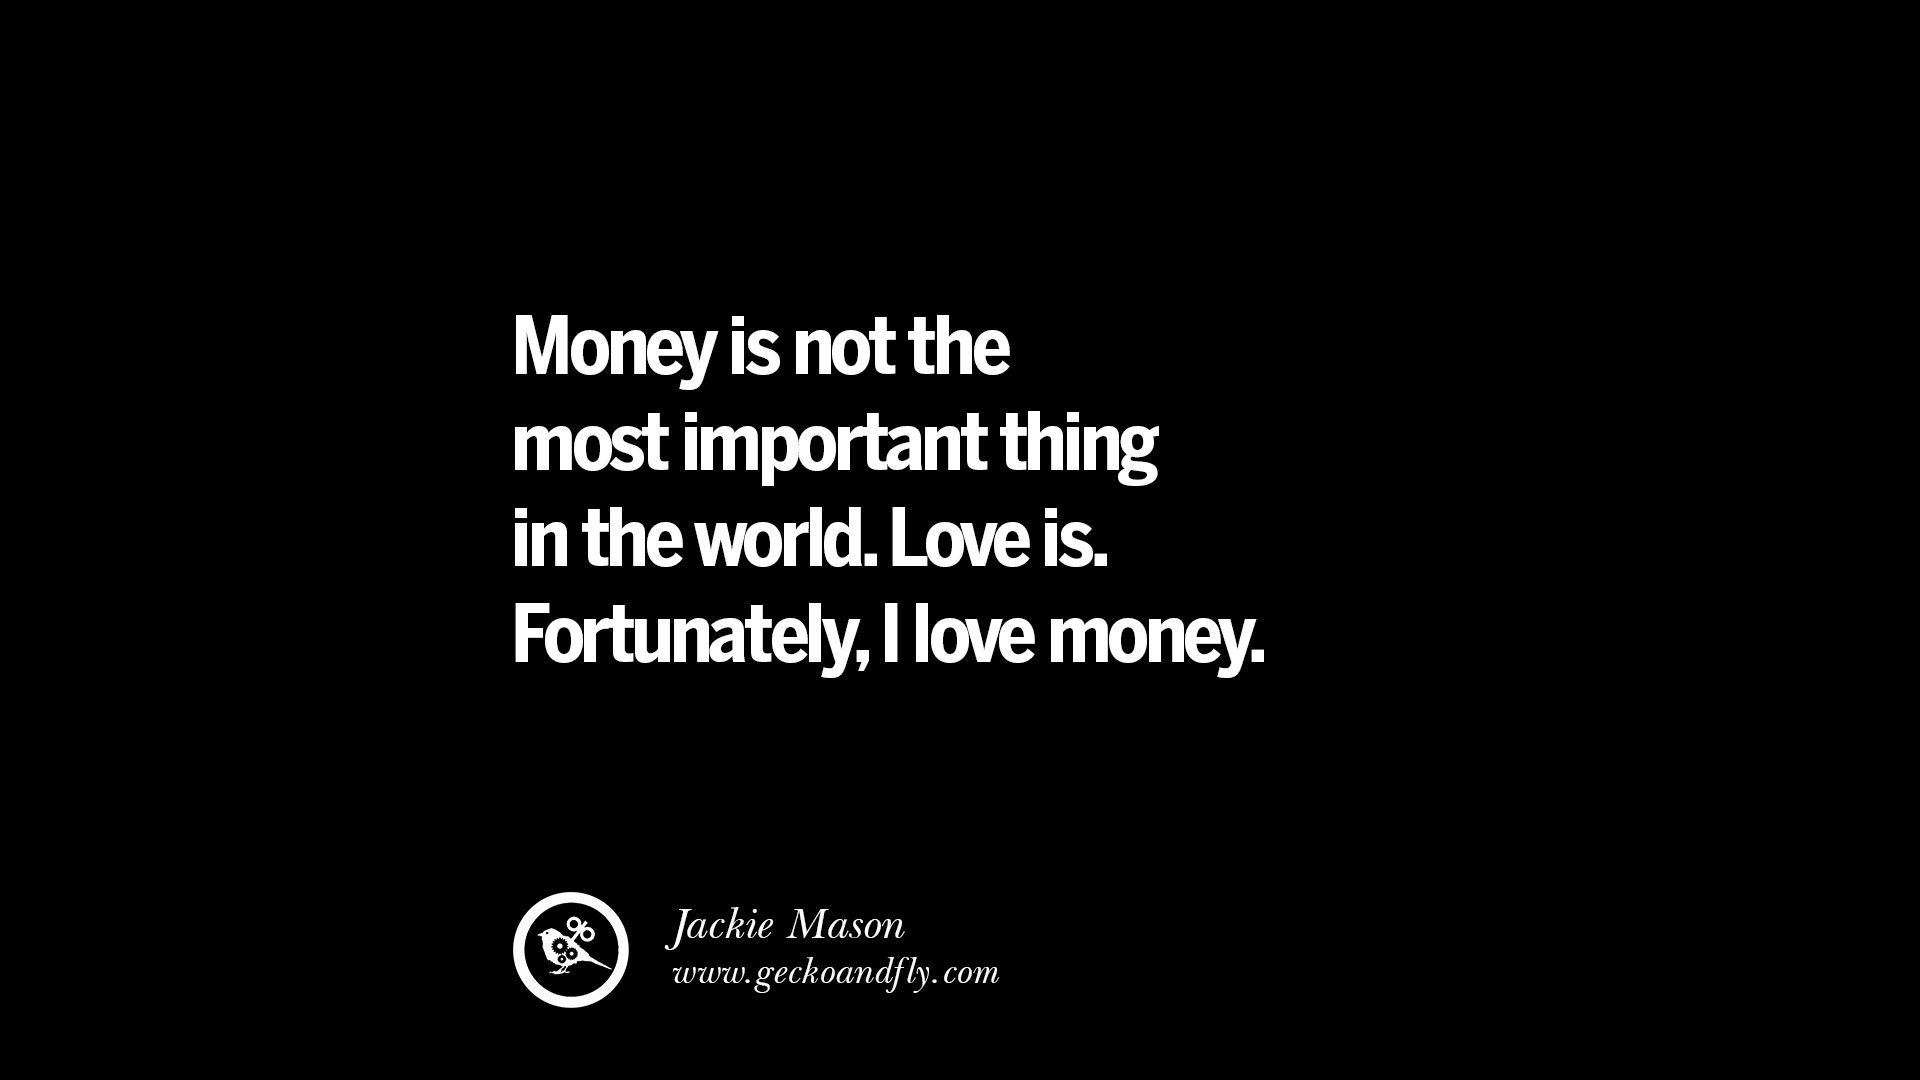 I Love Myself Quotes Wallpapers Money Quotes Quotesgram